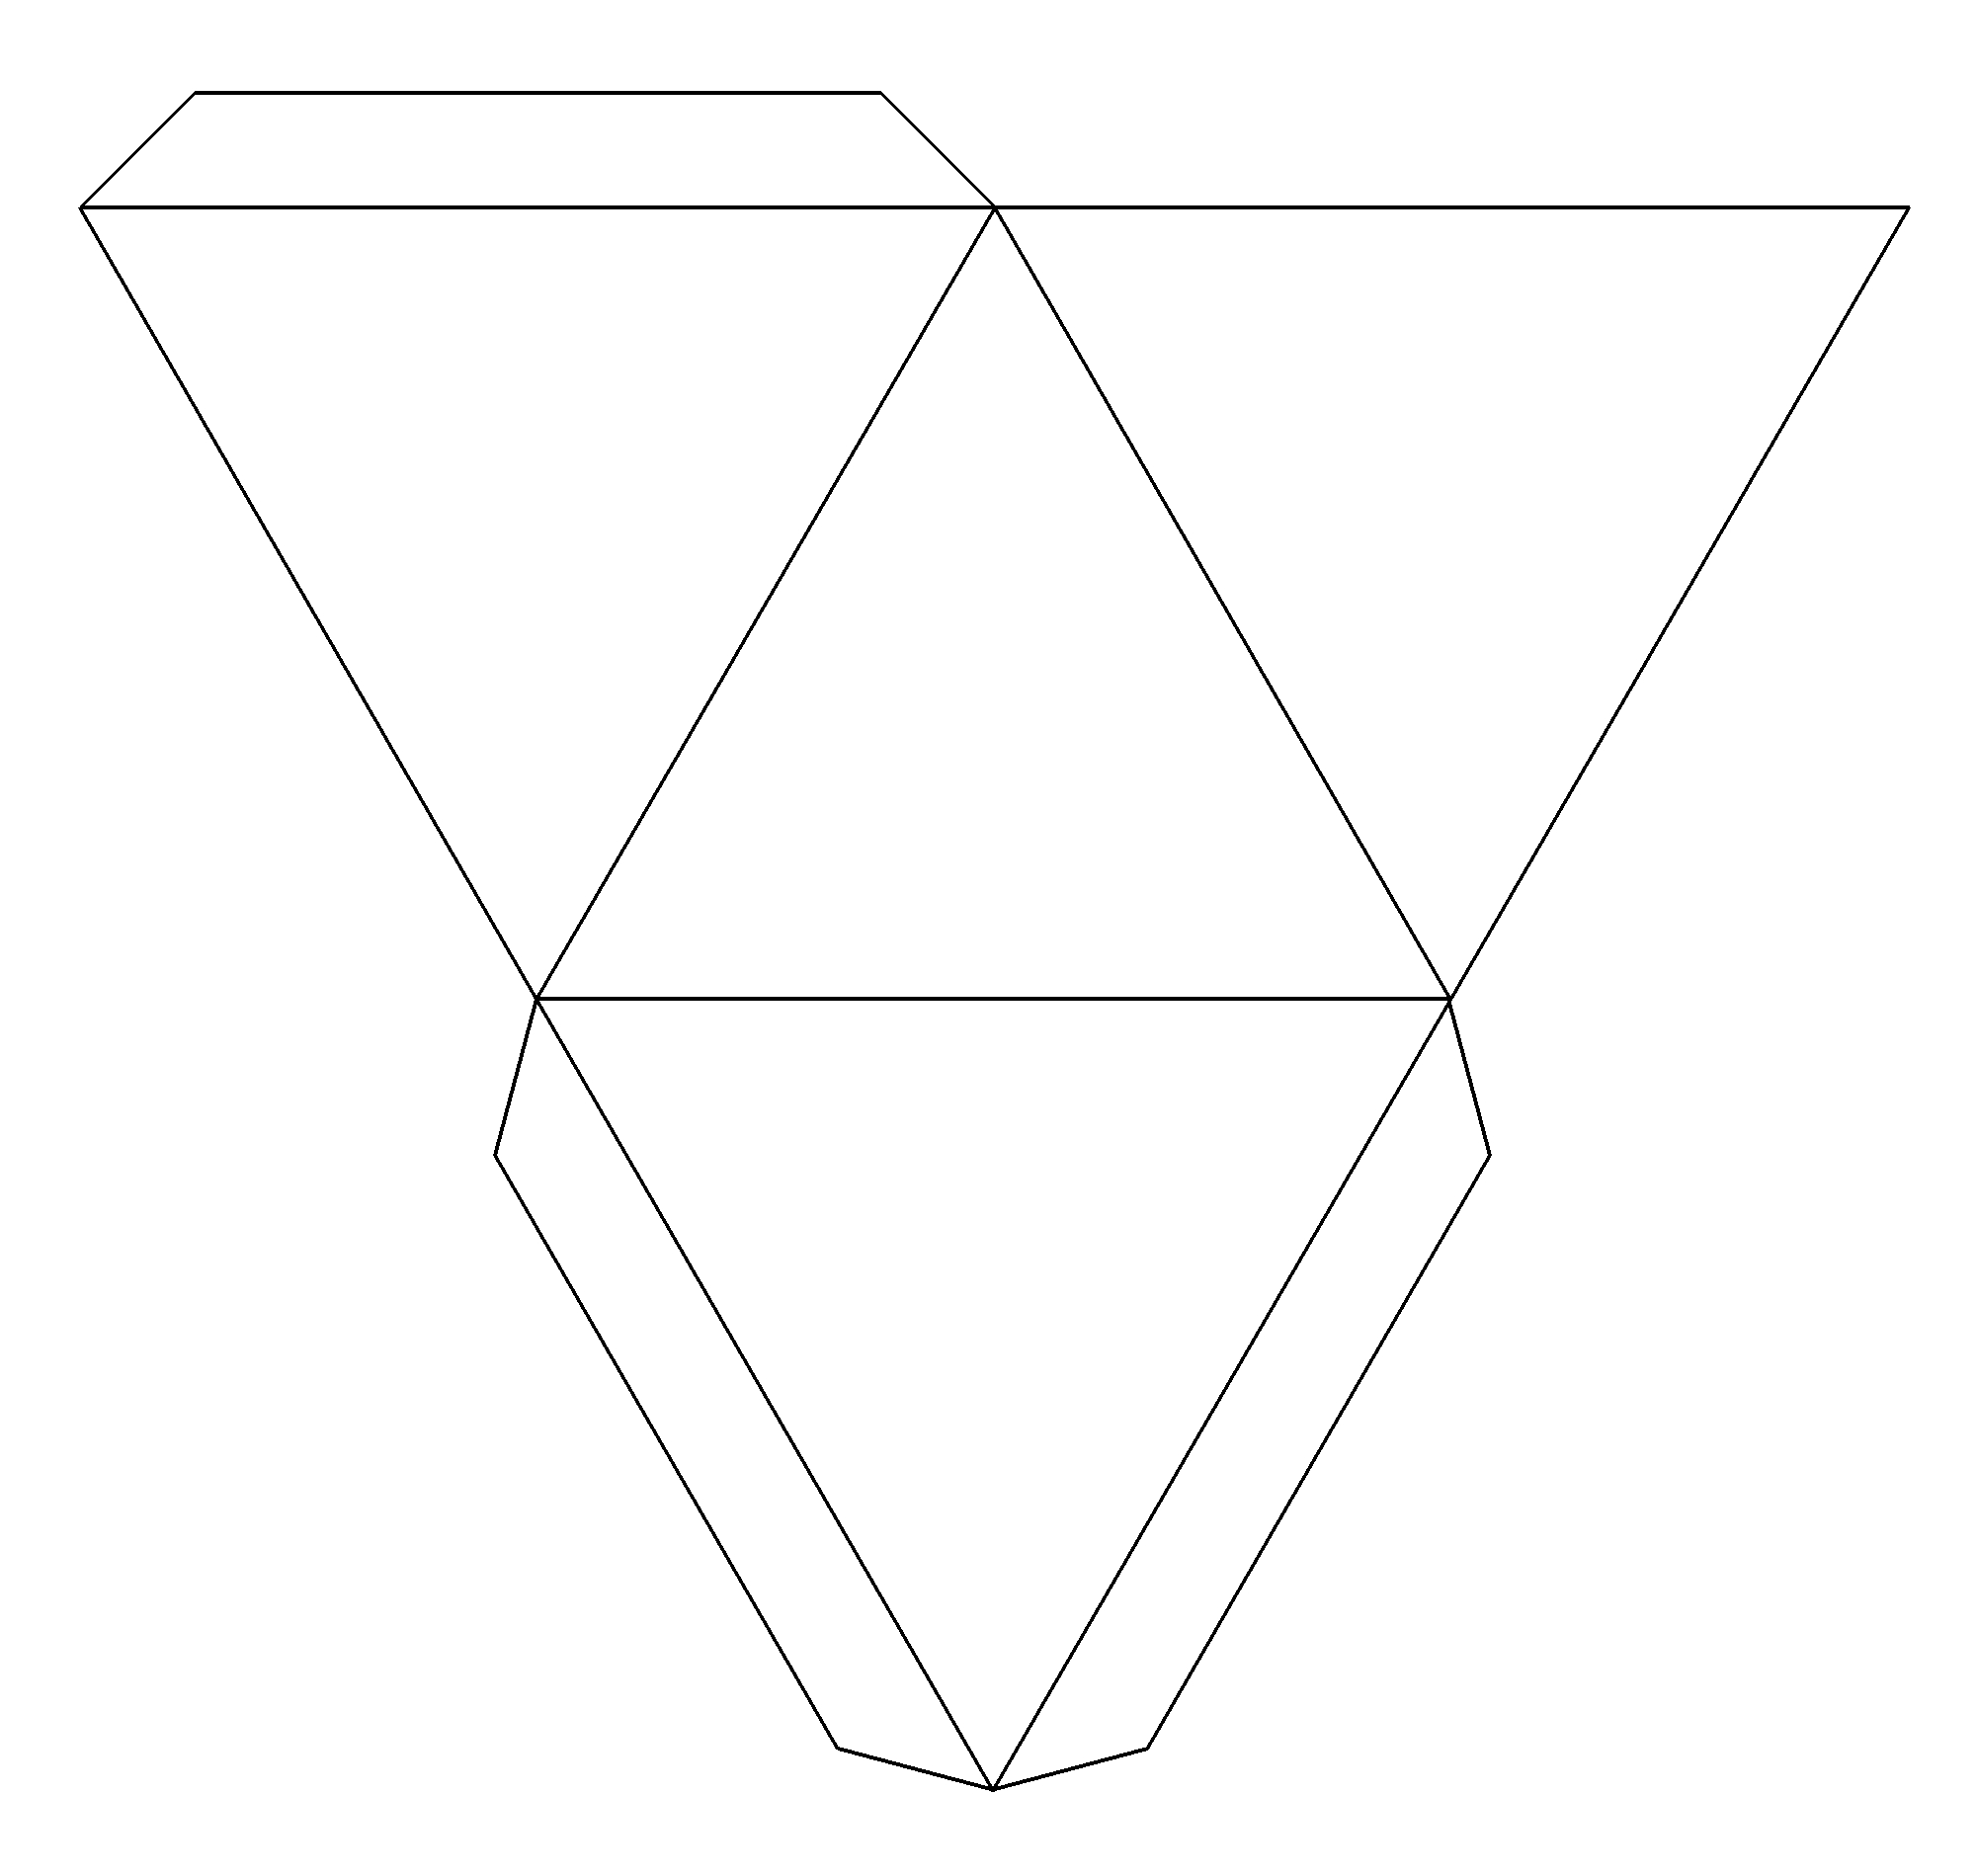 3D Cut out Pyramid Pattern submited images.